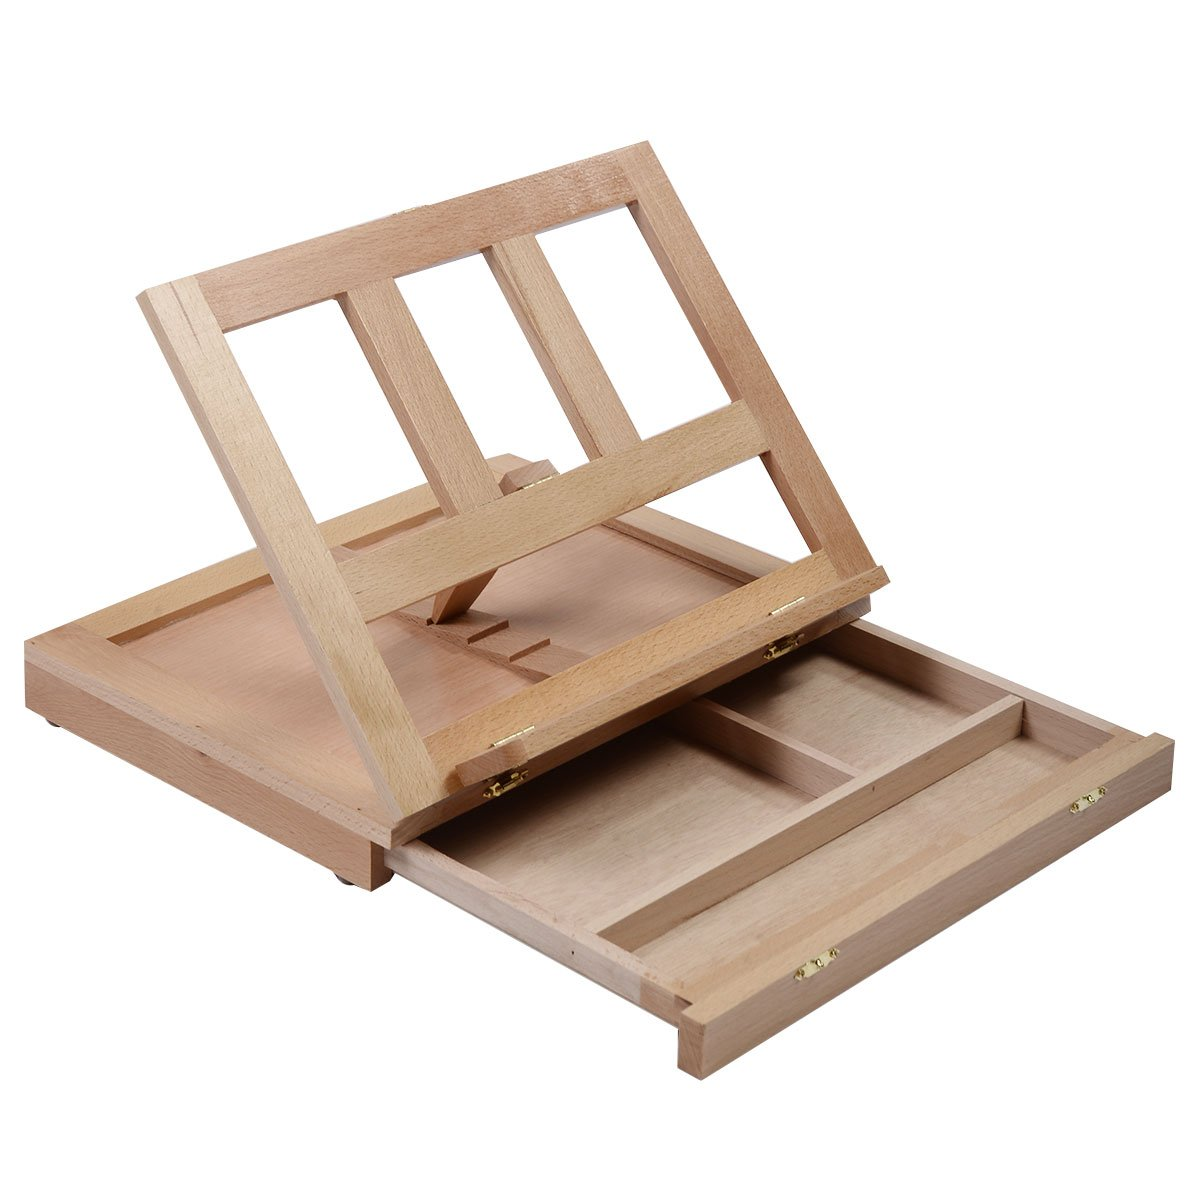 Costway Artist Easel Art Drawing Painting Wood Table Sketching Box Board Desktop Durable (Push and Pull Easel)